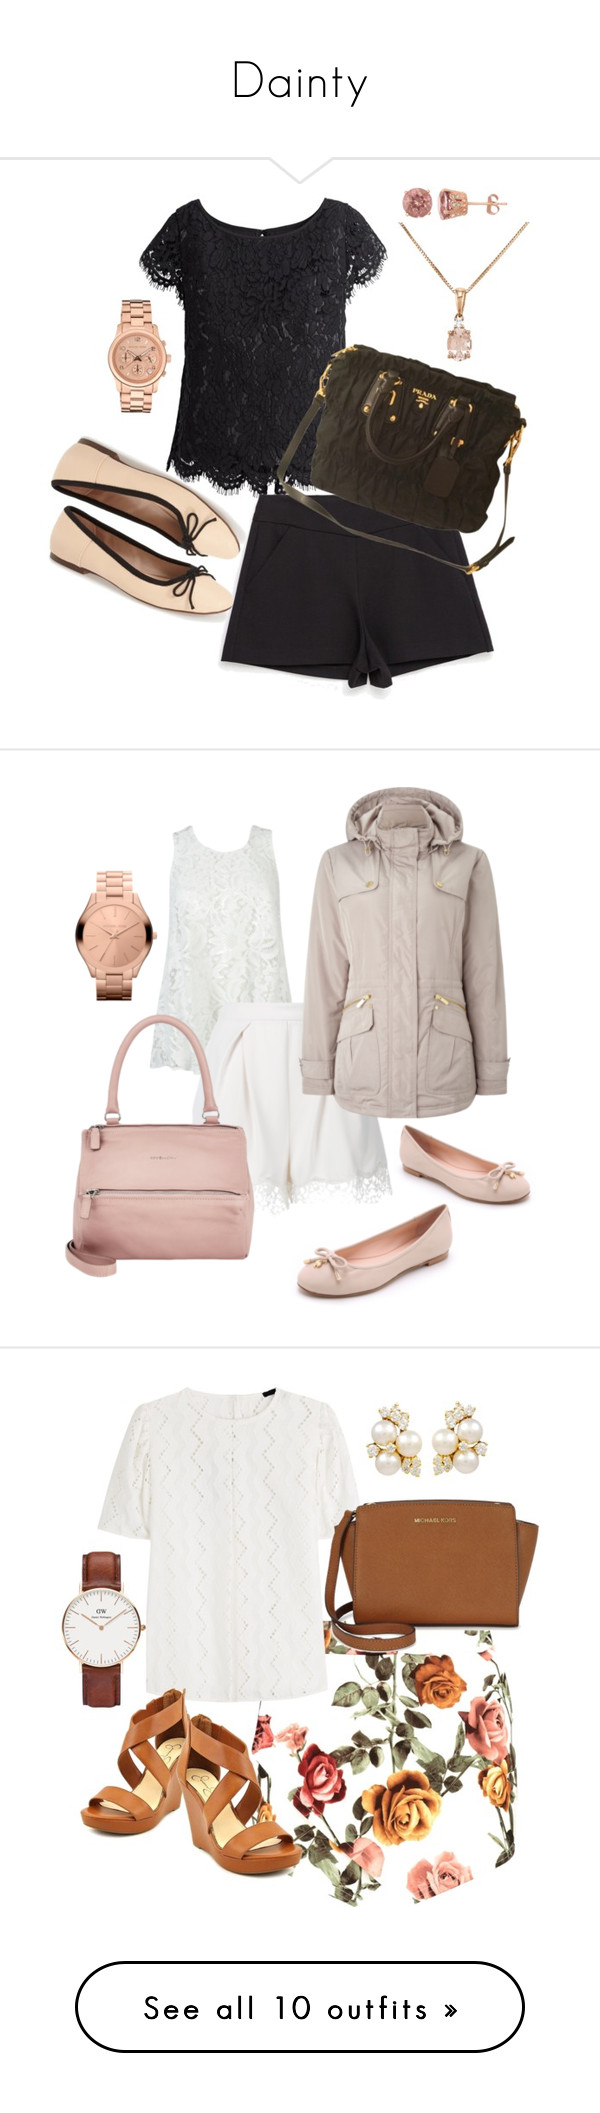 """Dainty"" by vien-resu ❤ liked on Polyvore featuring White House Black Market, Zara, Topshop, Prada, David Tutera, Michael Kors, Ermanno Scervino, Zimmermann, Dash and Givenchy"